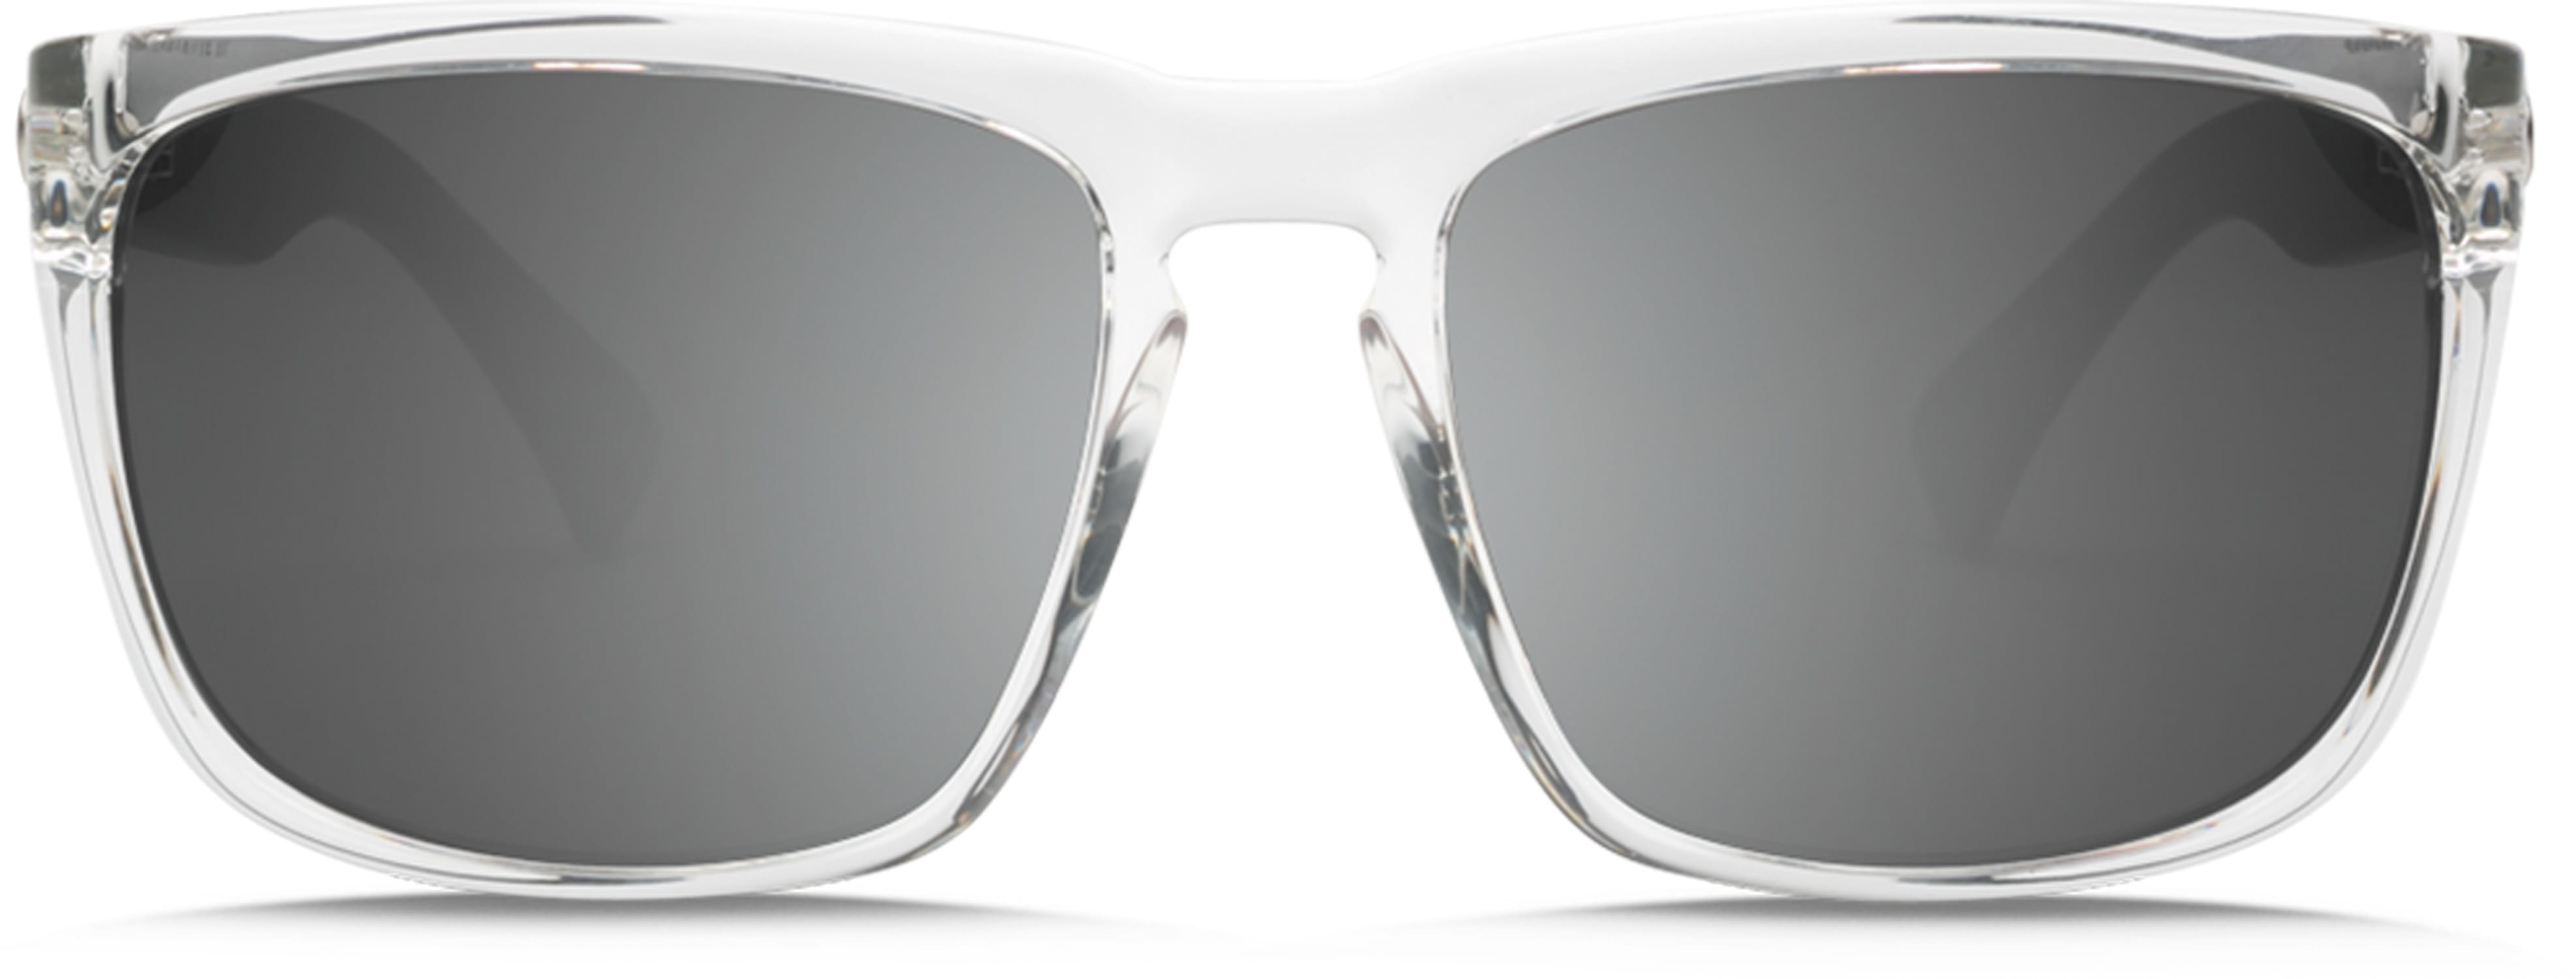 f1334601123 Electric Knoxville XL Sunglasses - thumbnail 2